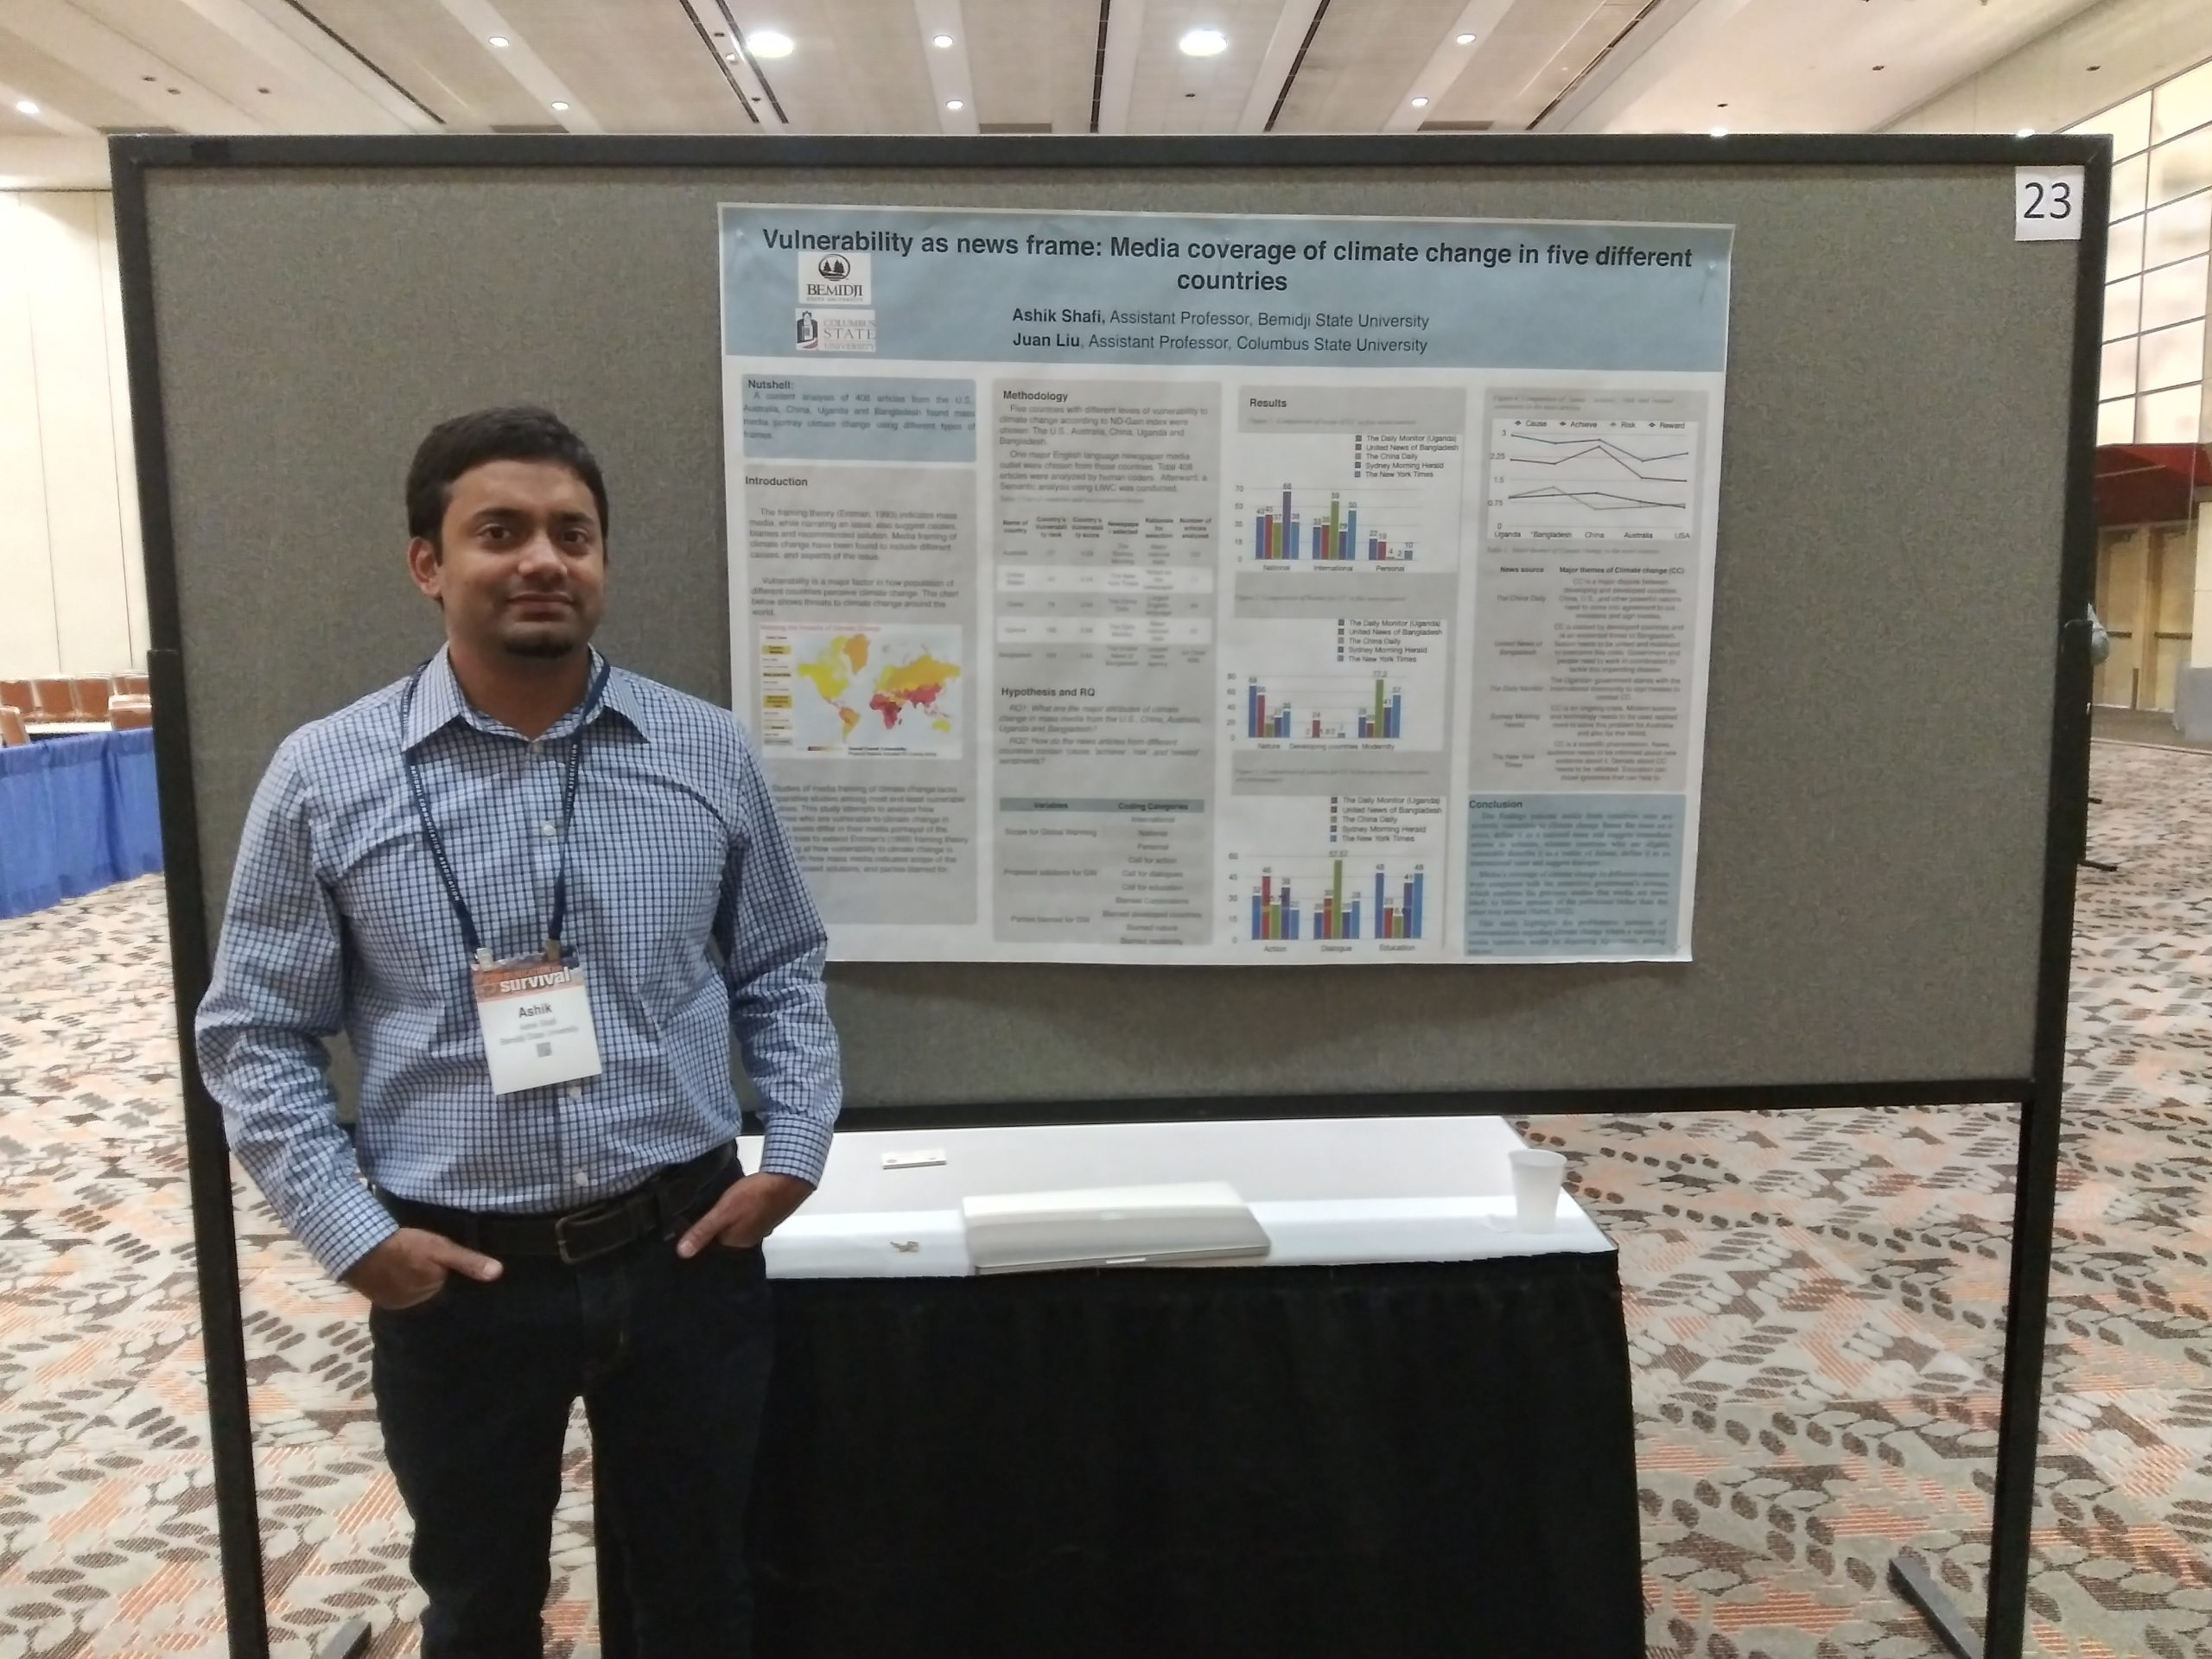 Dr. Ashik Shafi standing with his presentation poster.